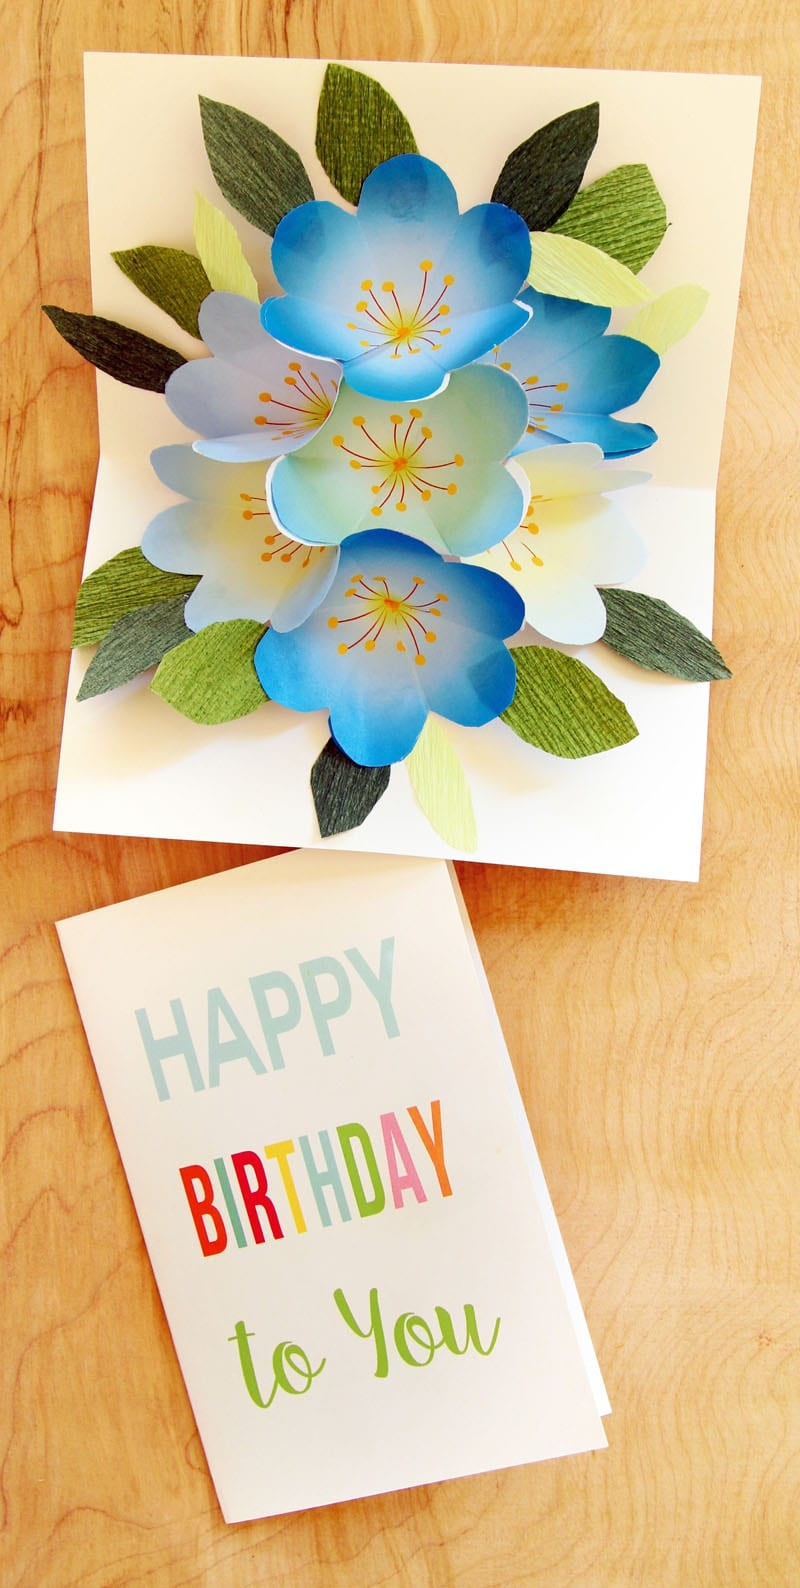 Free Printable Happy Birthday Card With Pop Up Bouquet - A Piece Of - Create Greeting Cards Online Free Printable